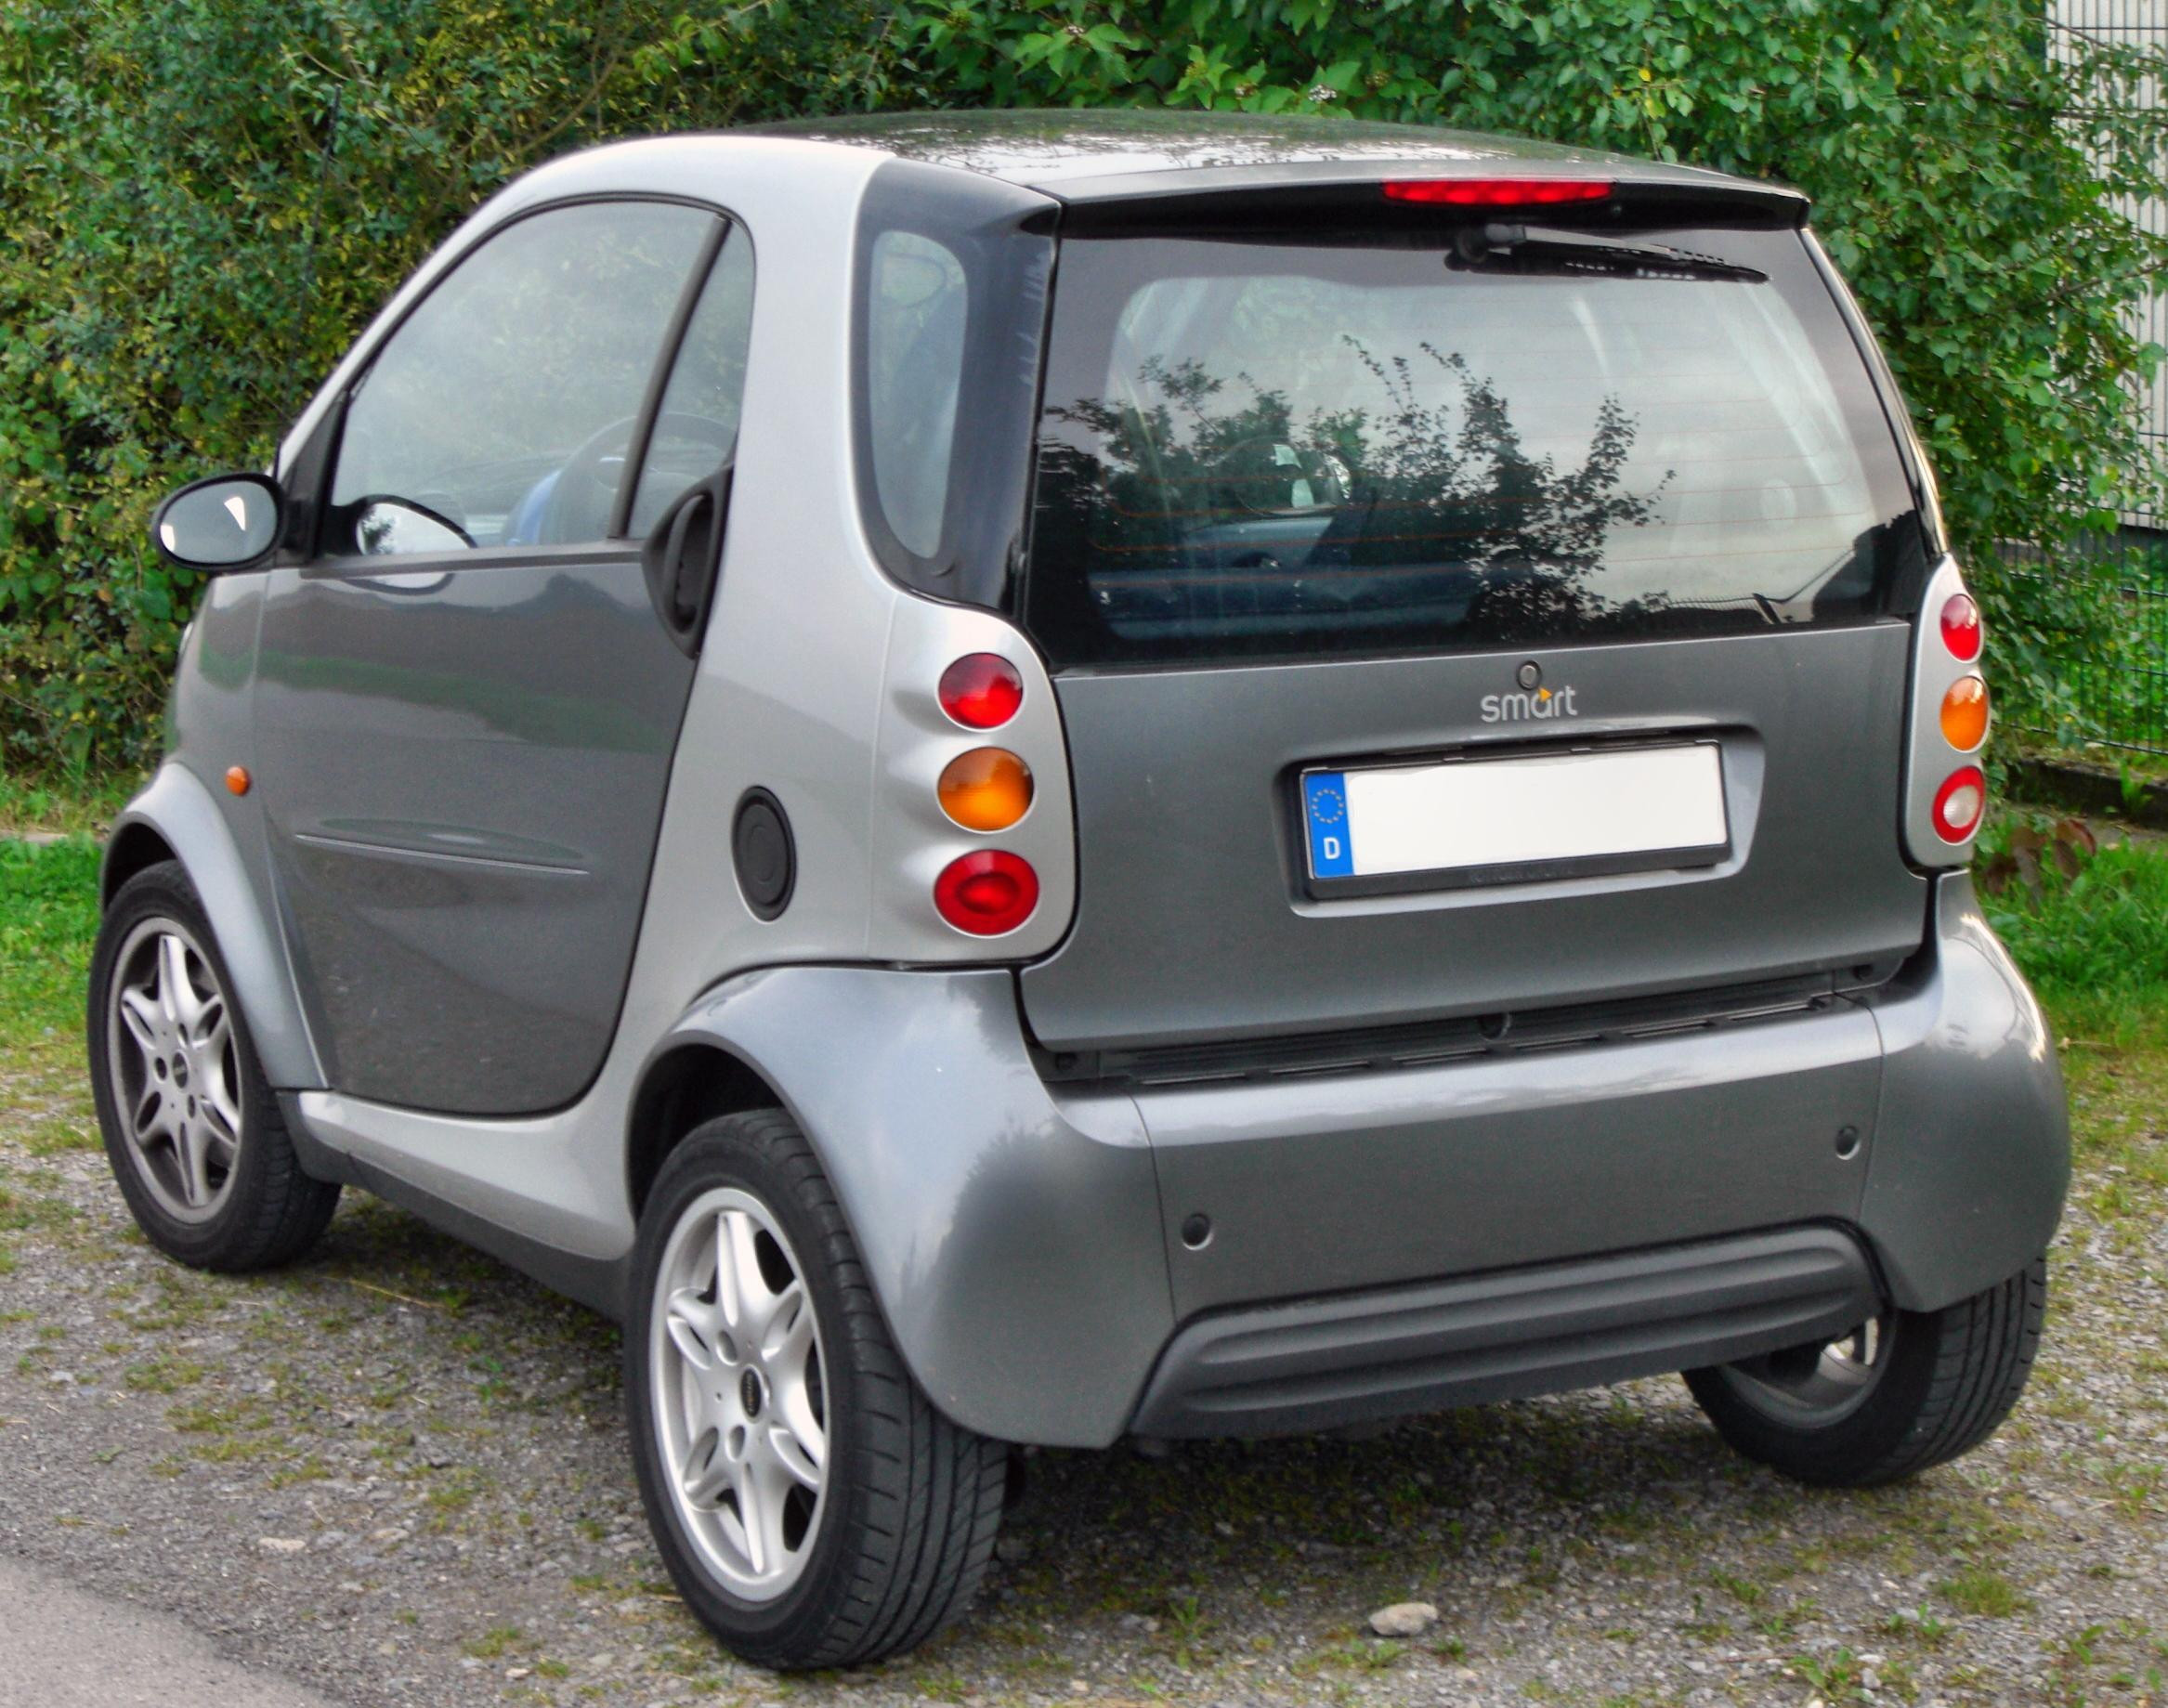 smart-fortwo-05